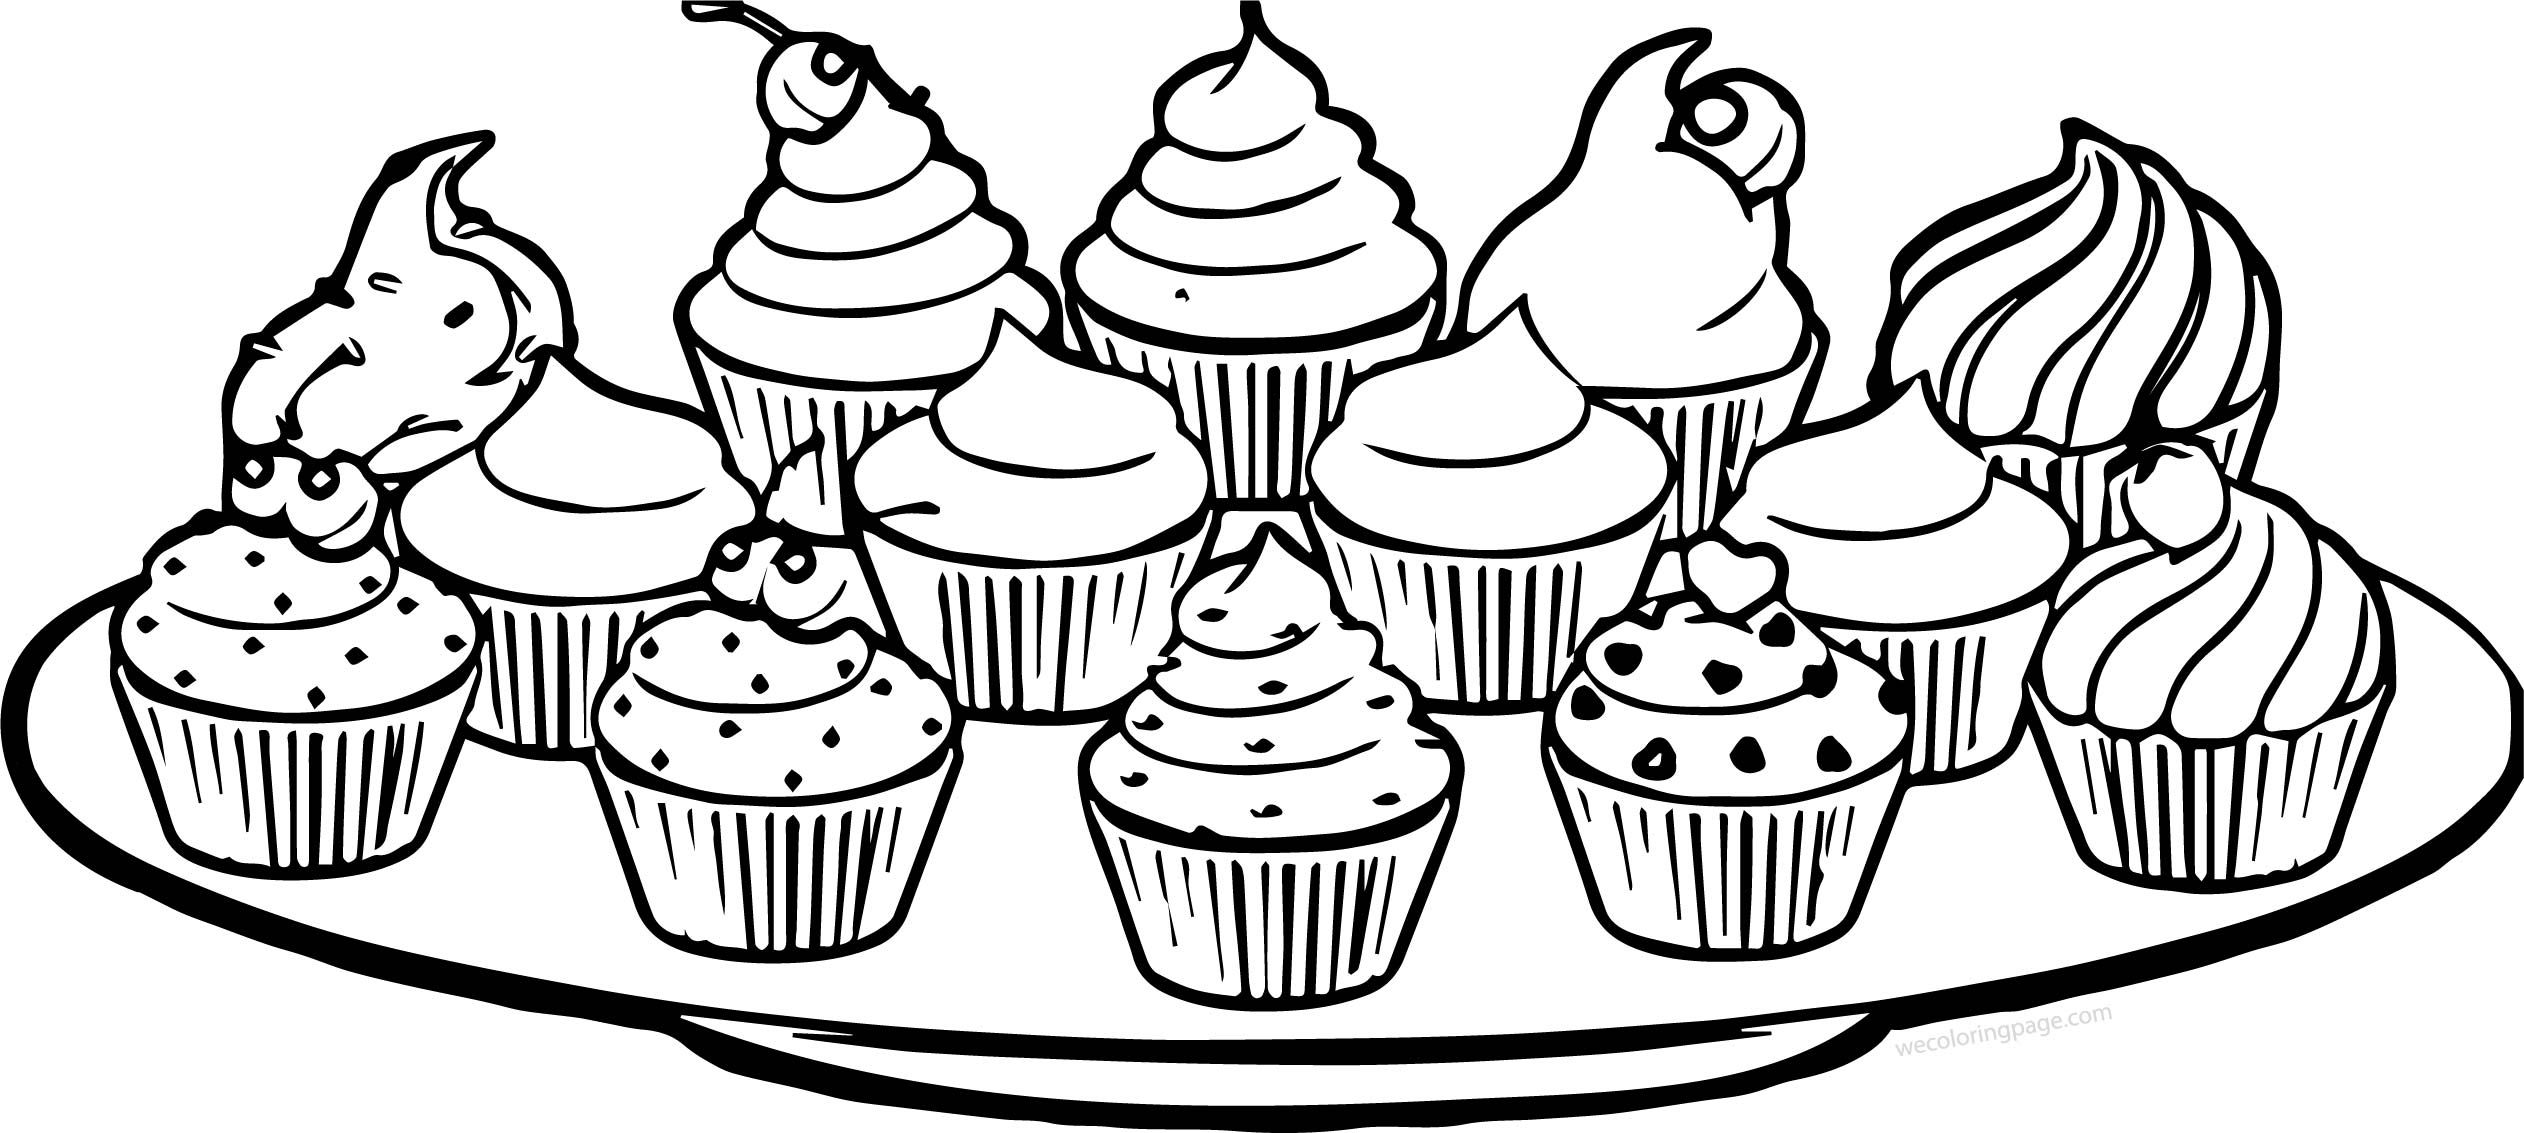 Nice Plate Of Cupcakes Coloring Page Free Coloring Pages Shopkins Colouring Pages Cupcake Coloring Pages